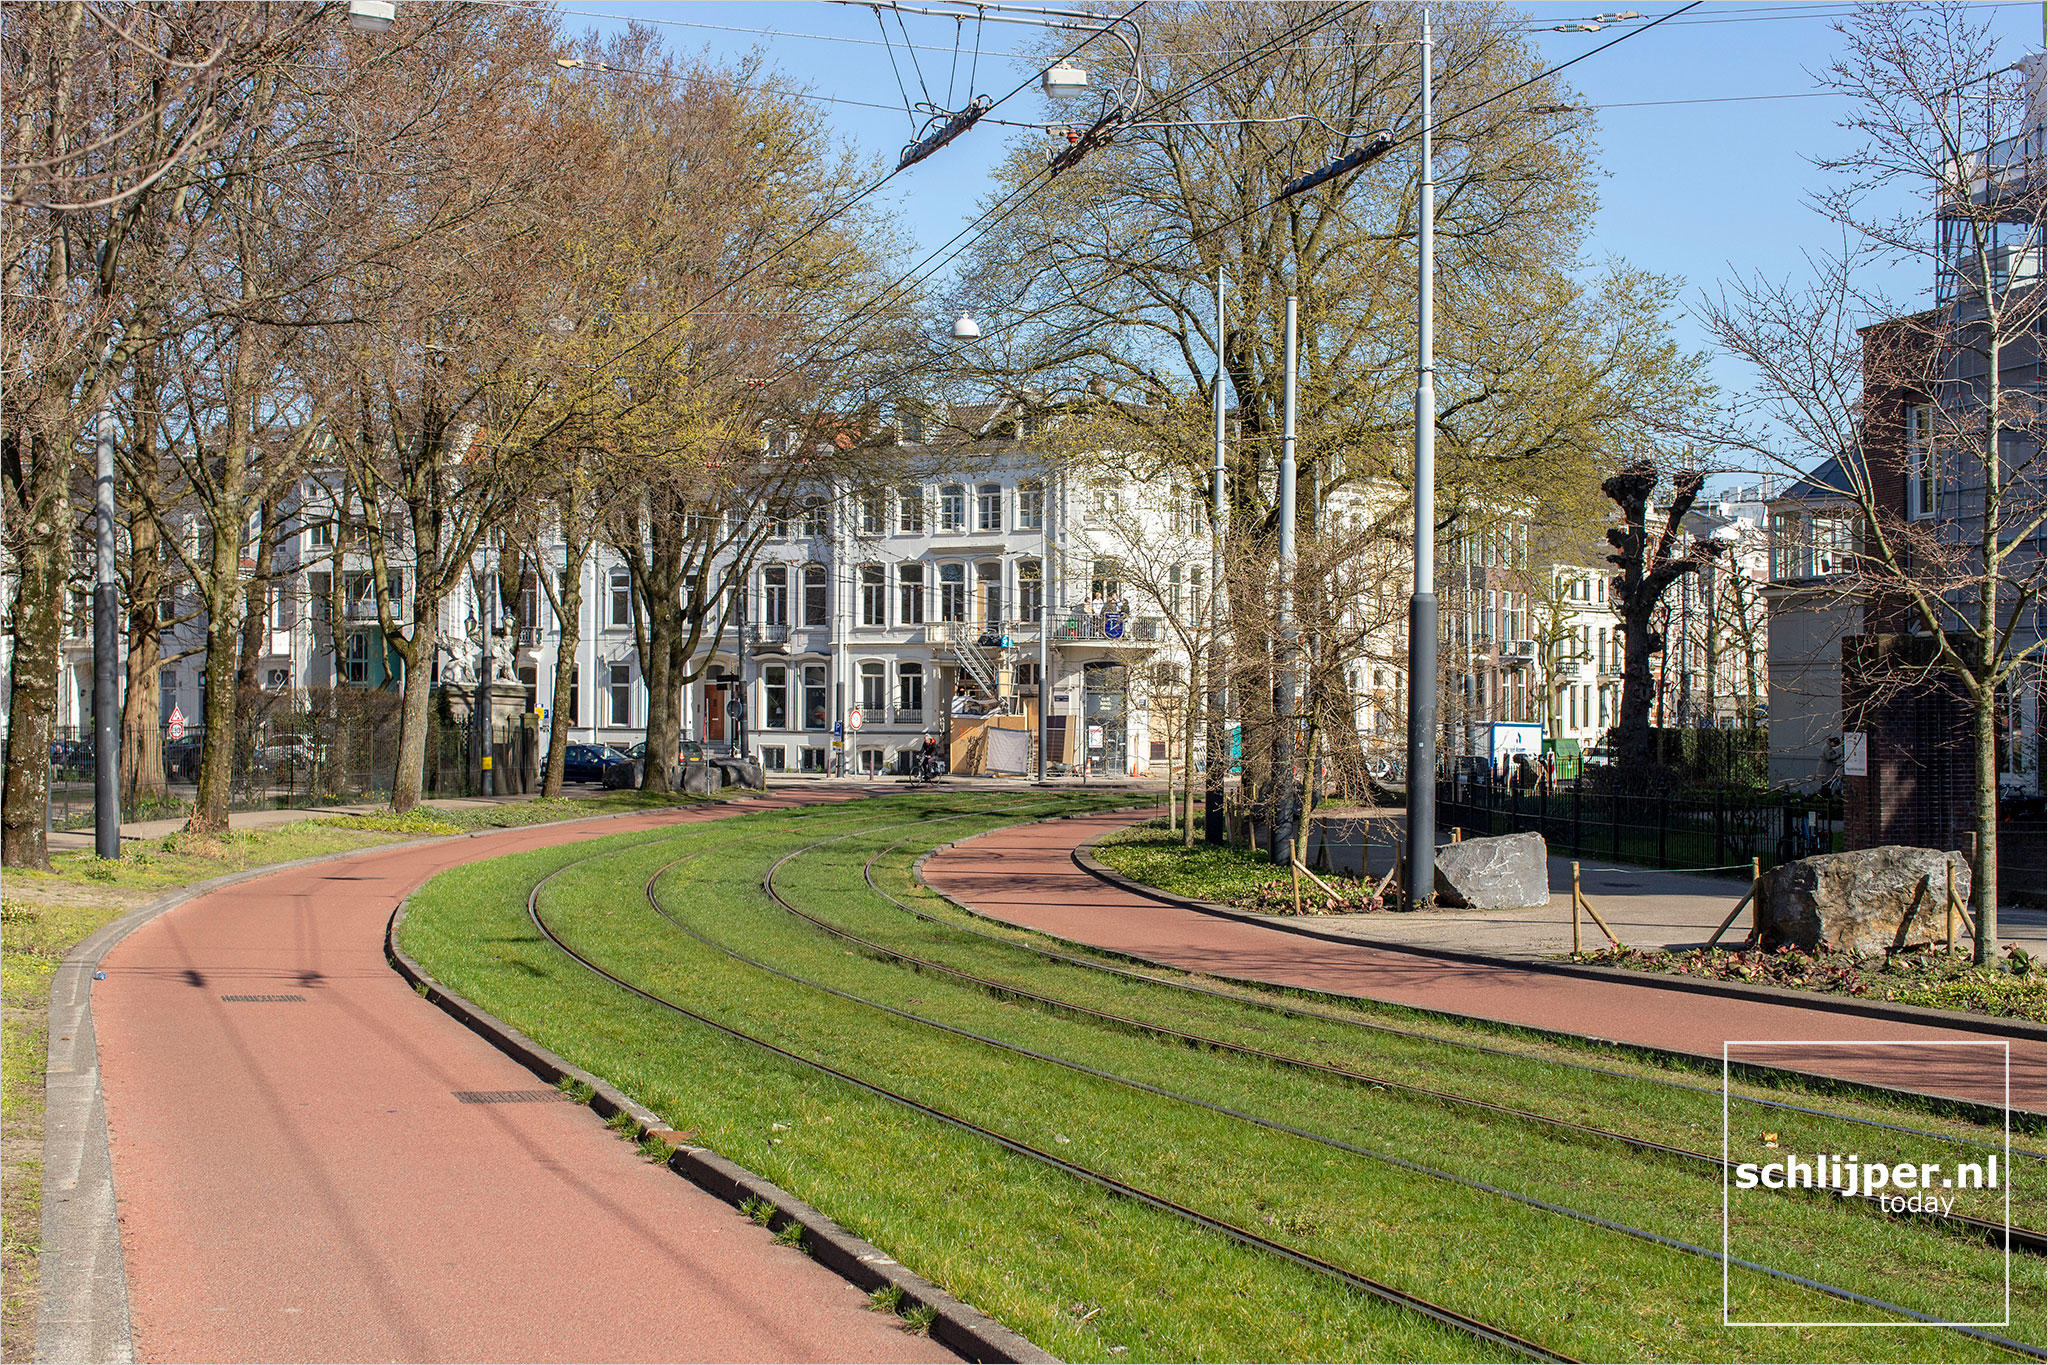 The Netherlands, Amsterdam, 29 maart 2021